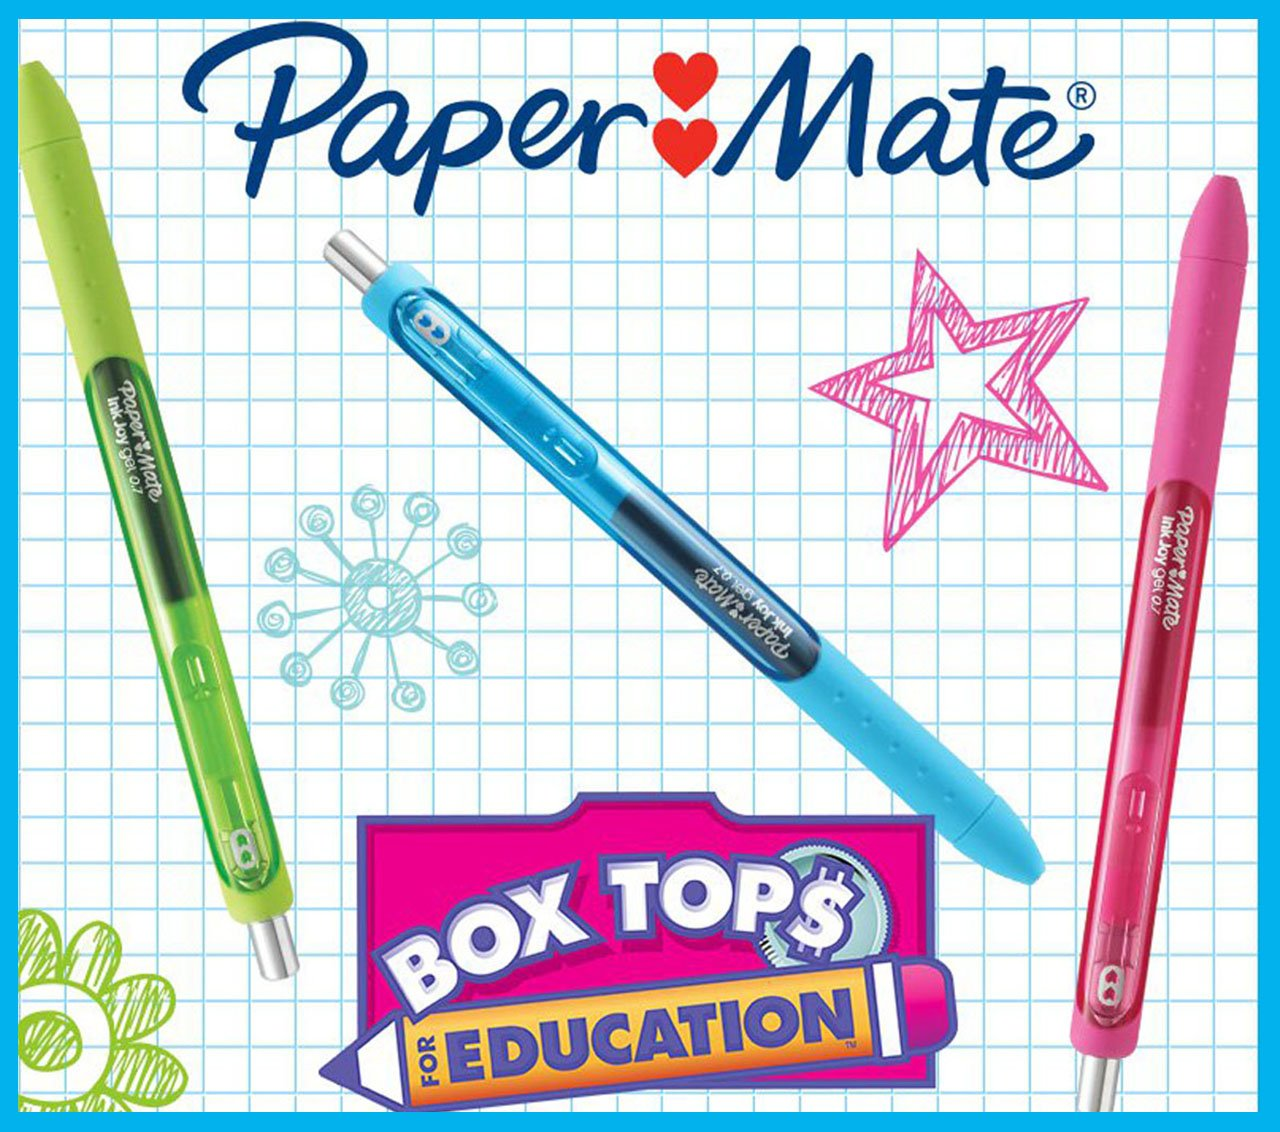 paper mate pens pencils coloring erasers correction products